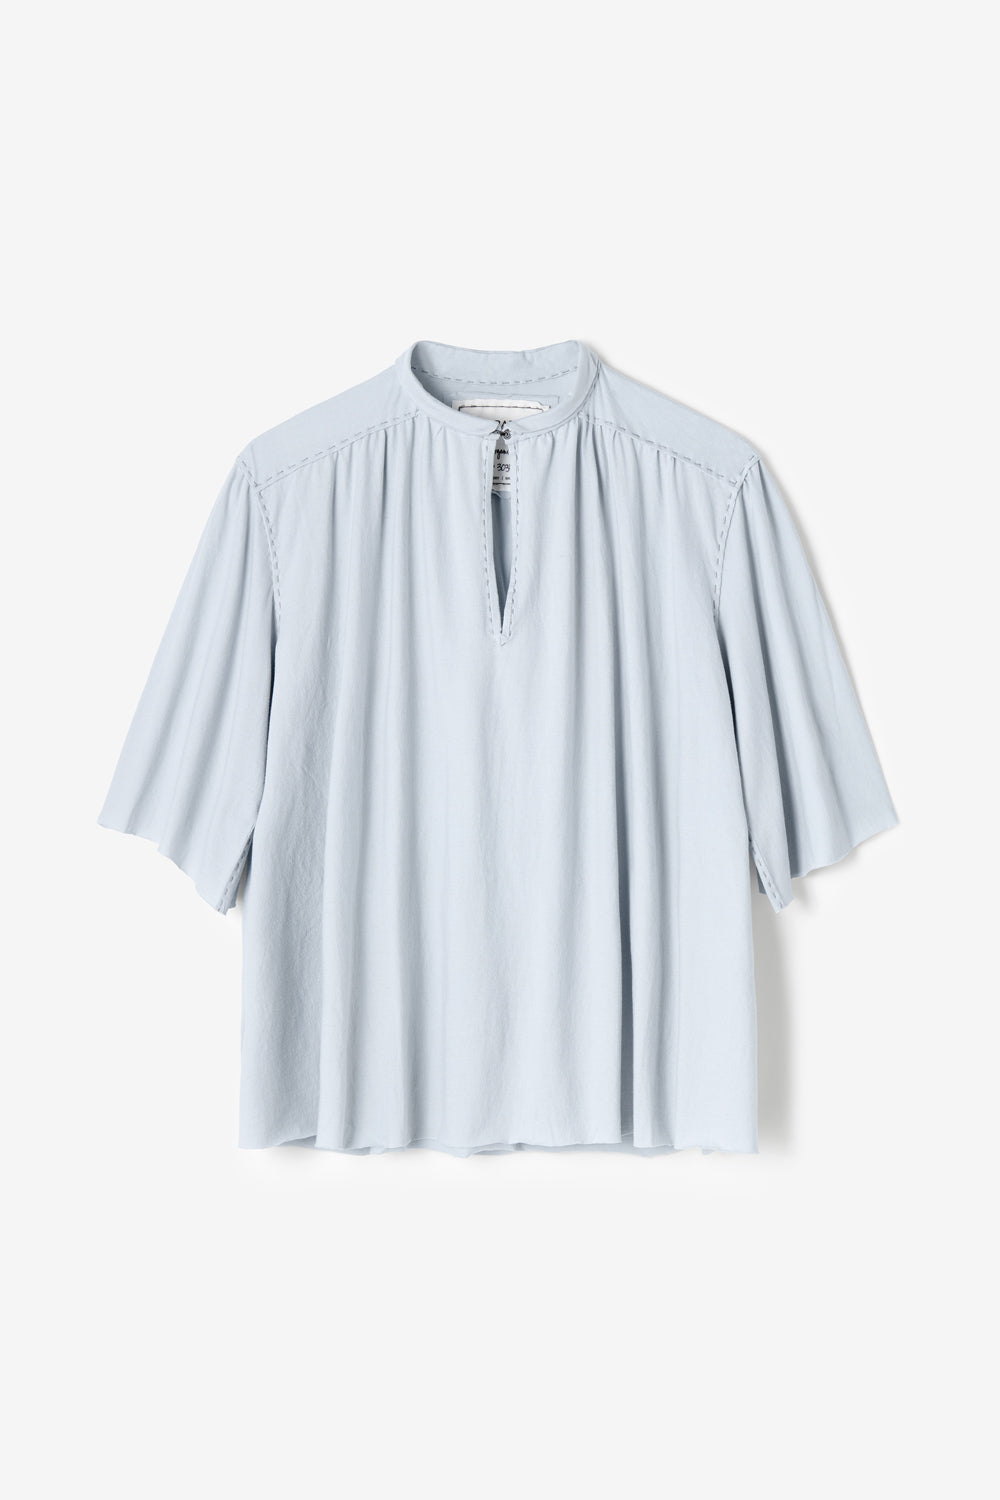 Alabama Chanin Ines Top with Dolman Sleeve Hand-Sewn in Baby Blue